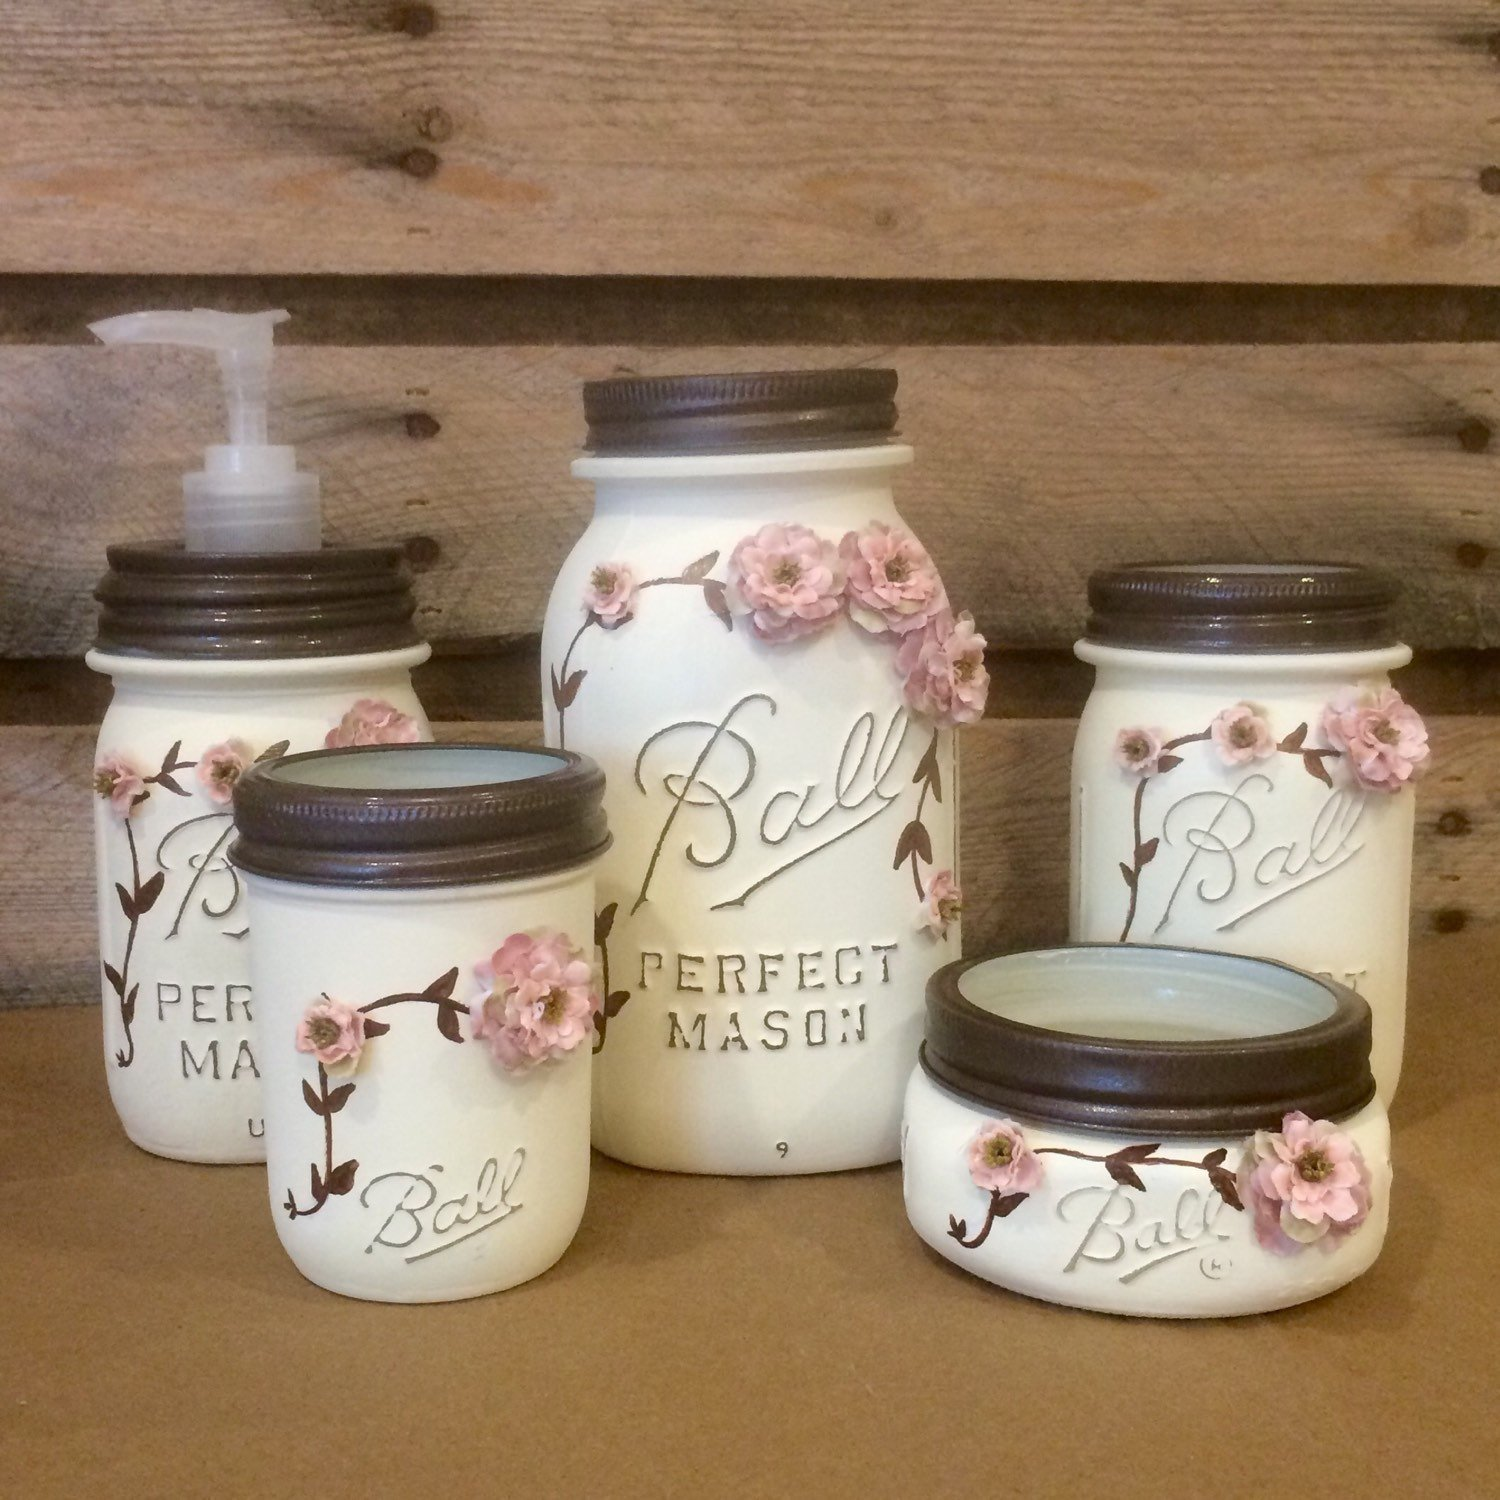 Cottage Chic Ivory and Rose Vintage Mason Jar Bathroom Set, Shabby Painted Mason Jar Bathroom Accessories, Rustic Bath Decor